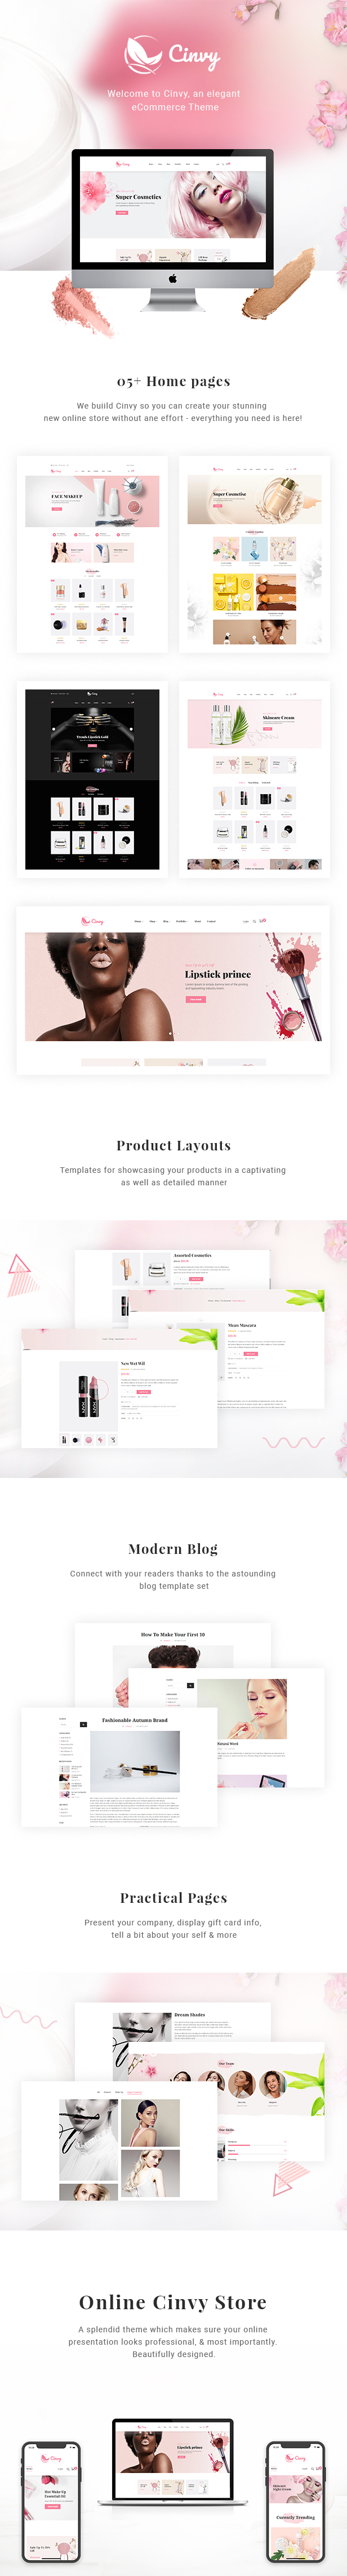 Cinvy – Cosmetics WooCommerce WordPress Theme - 1